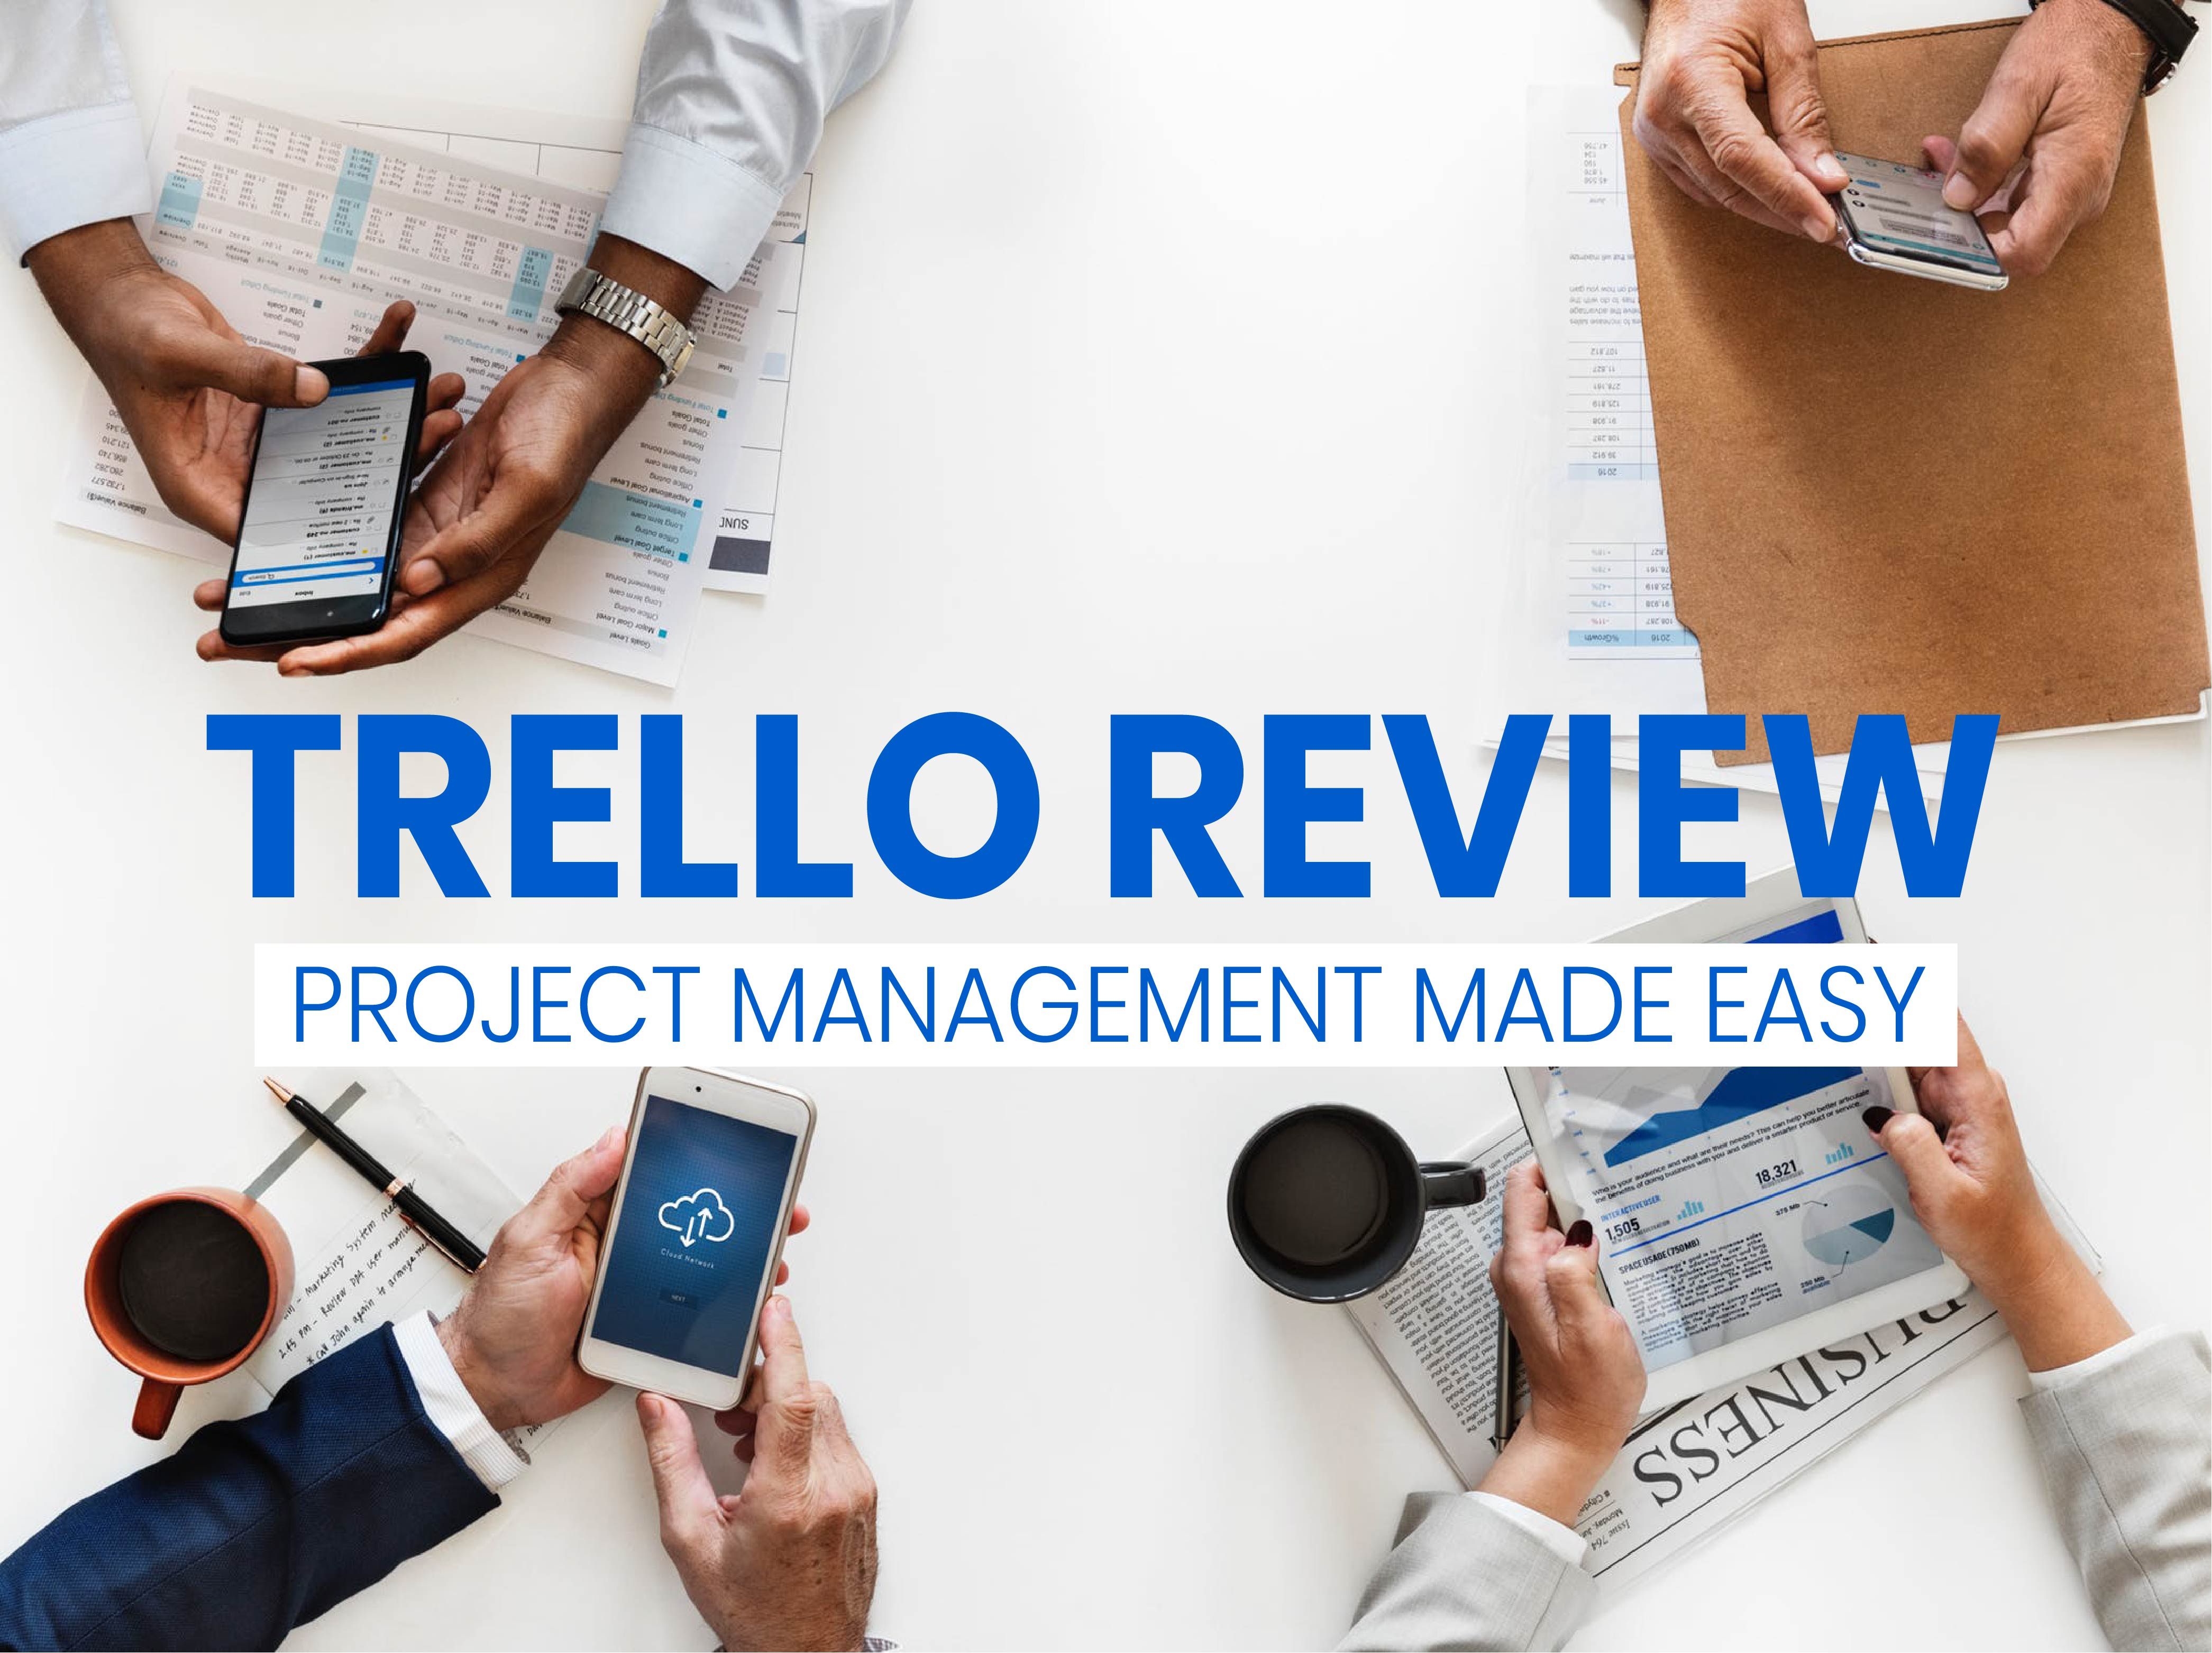 Trello Review: Project Management made easy